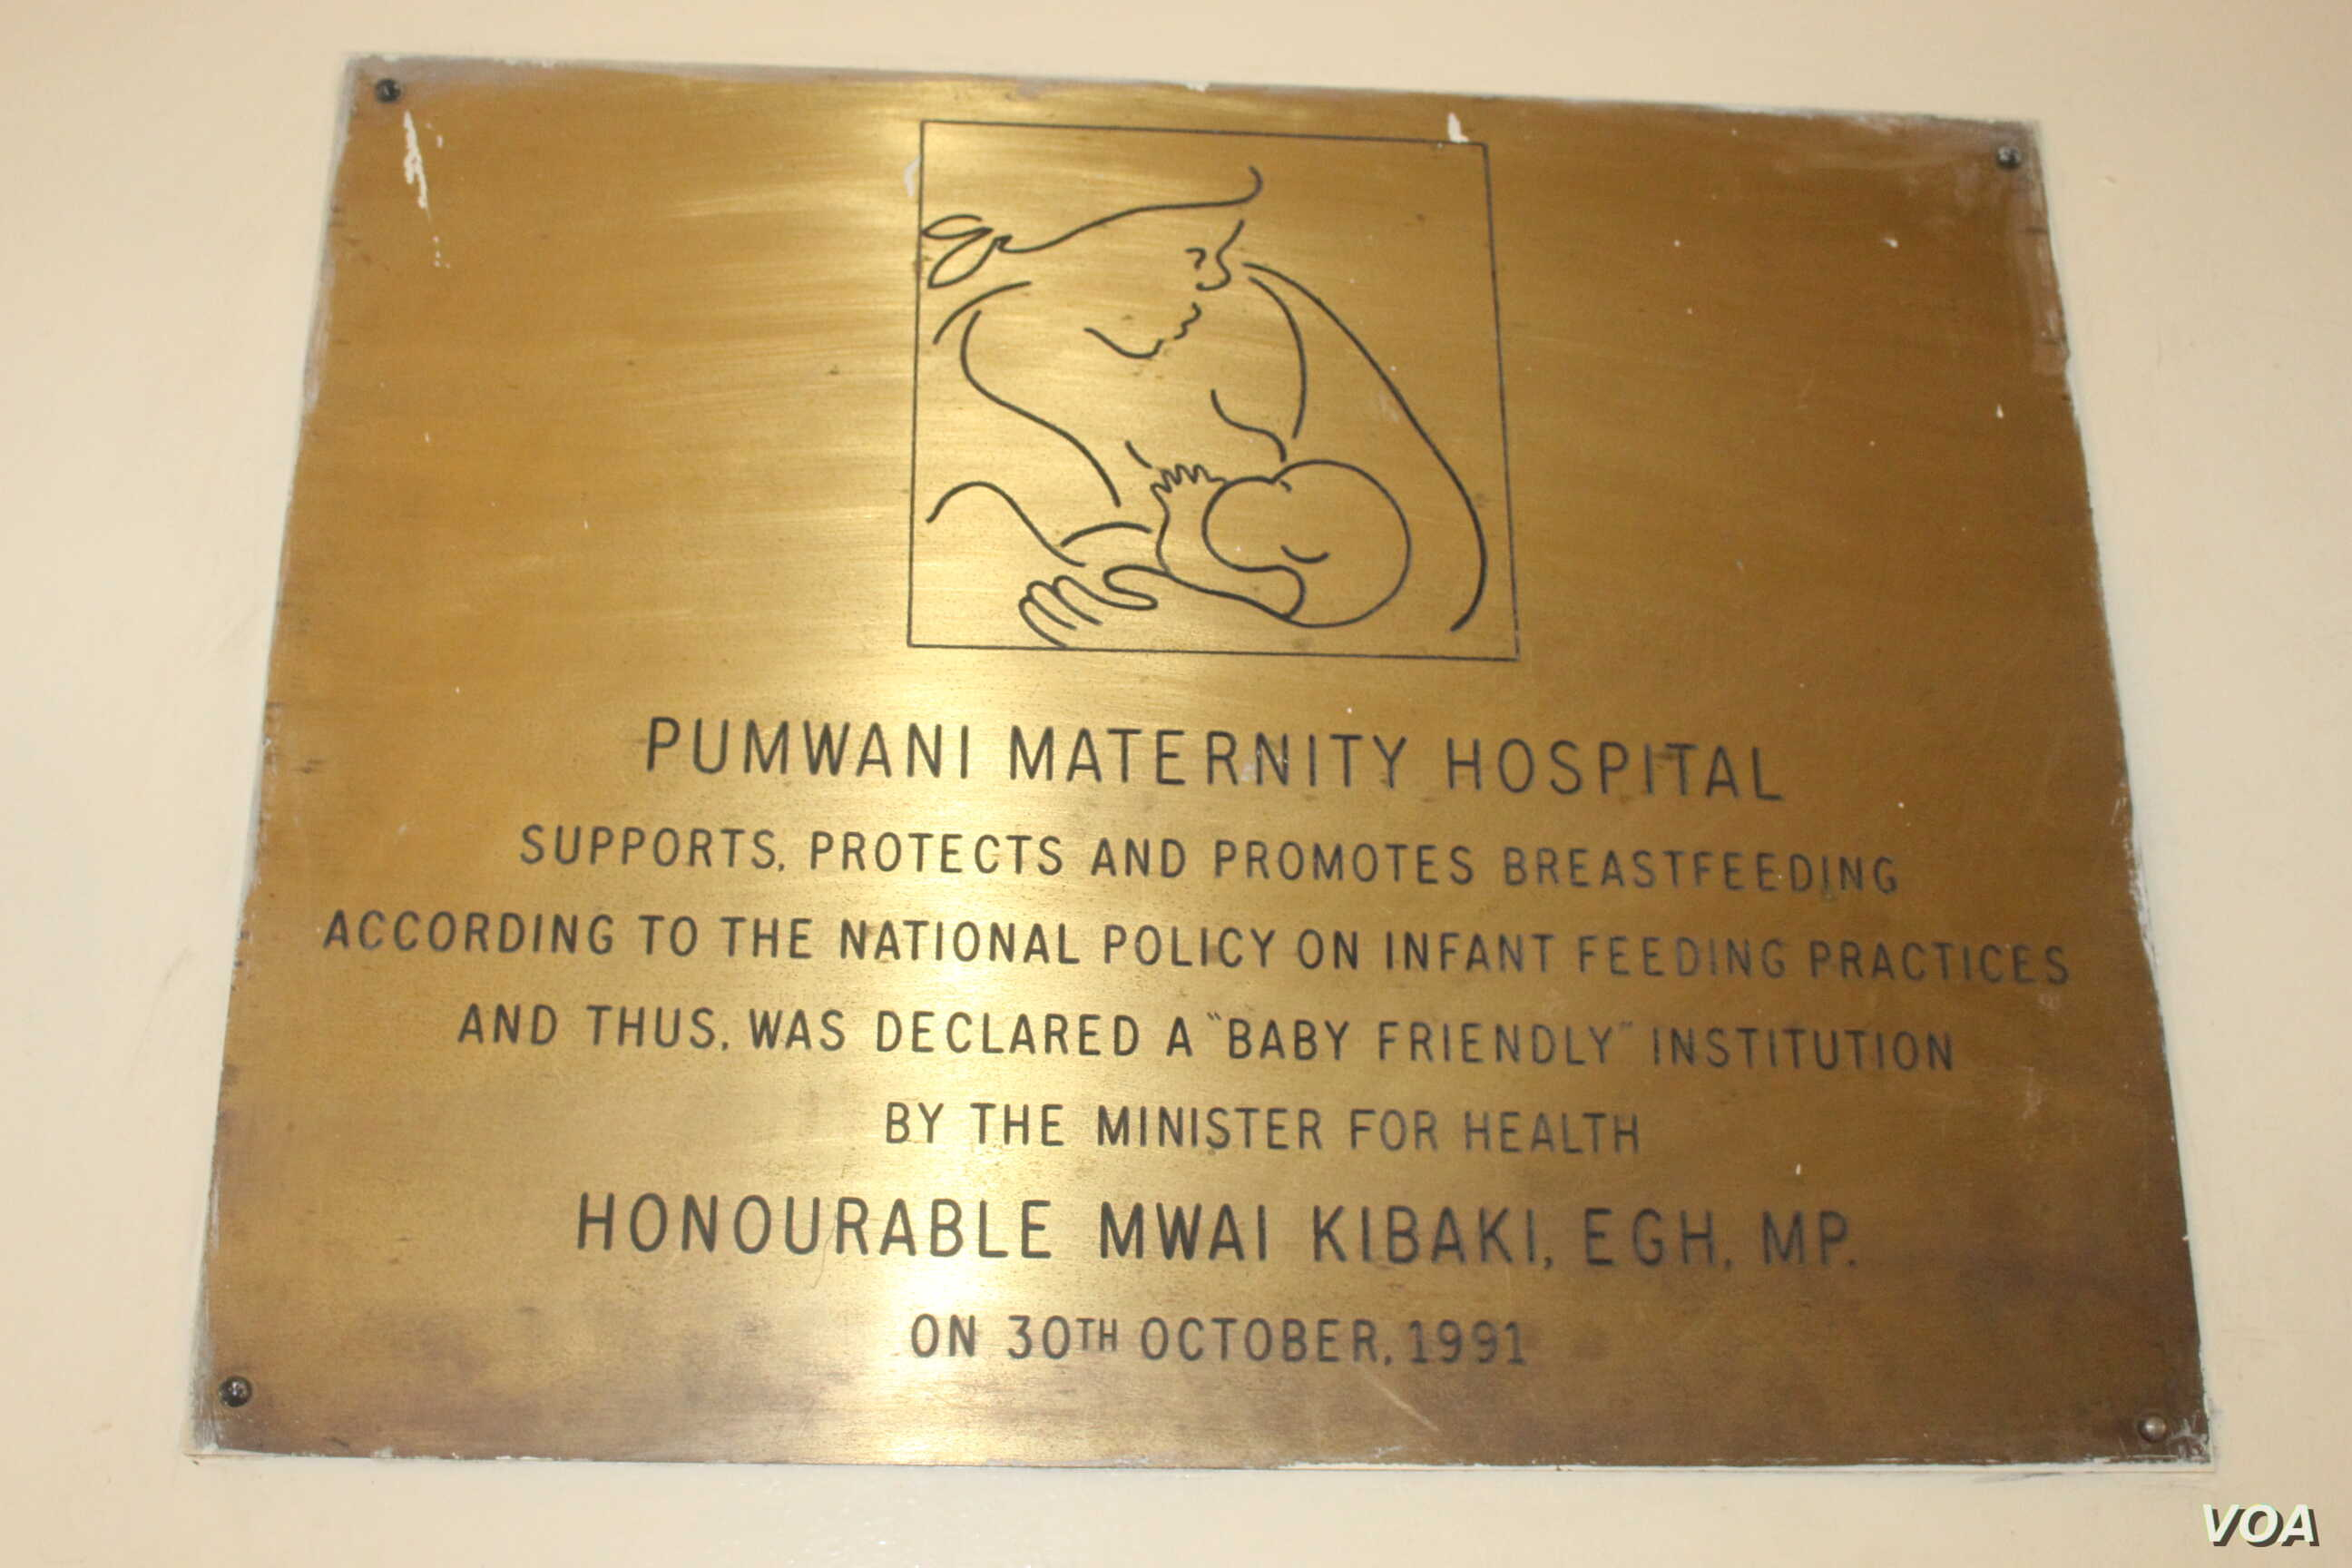 The Pumwani Maternity Hospital's policy on breastfeeding is displayed on this bronze plate. (R. Ombuor/VOA)